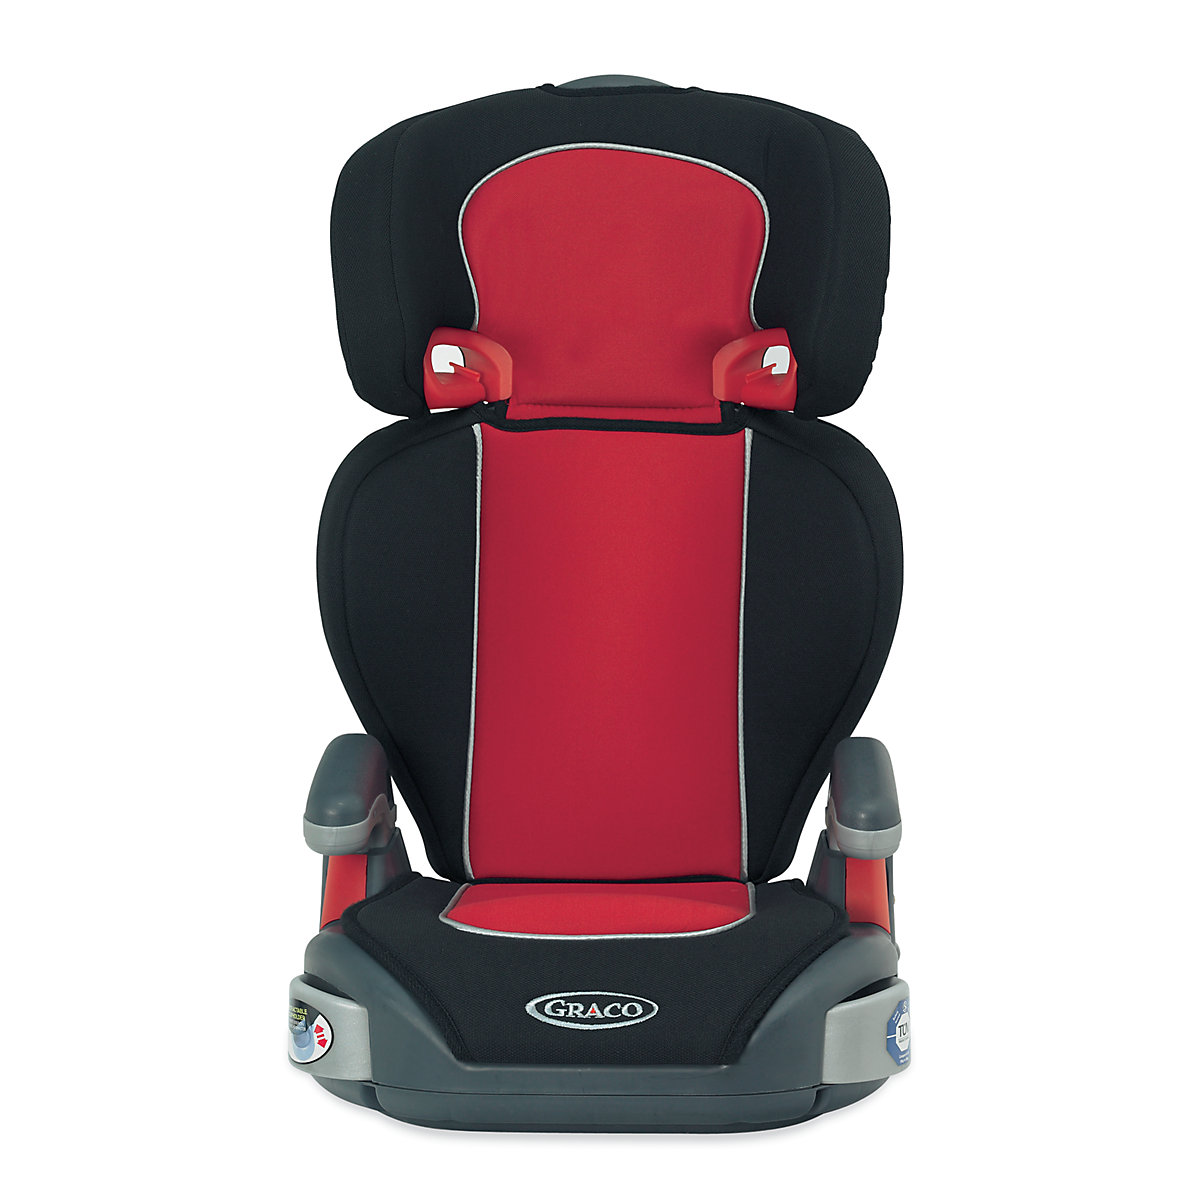 Graco Junior Maxi Netmums Reviews